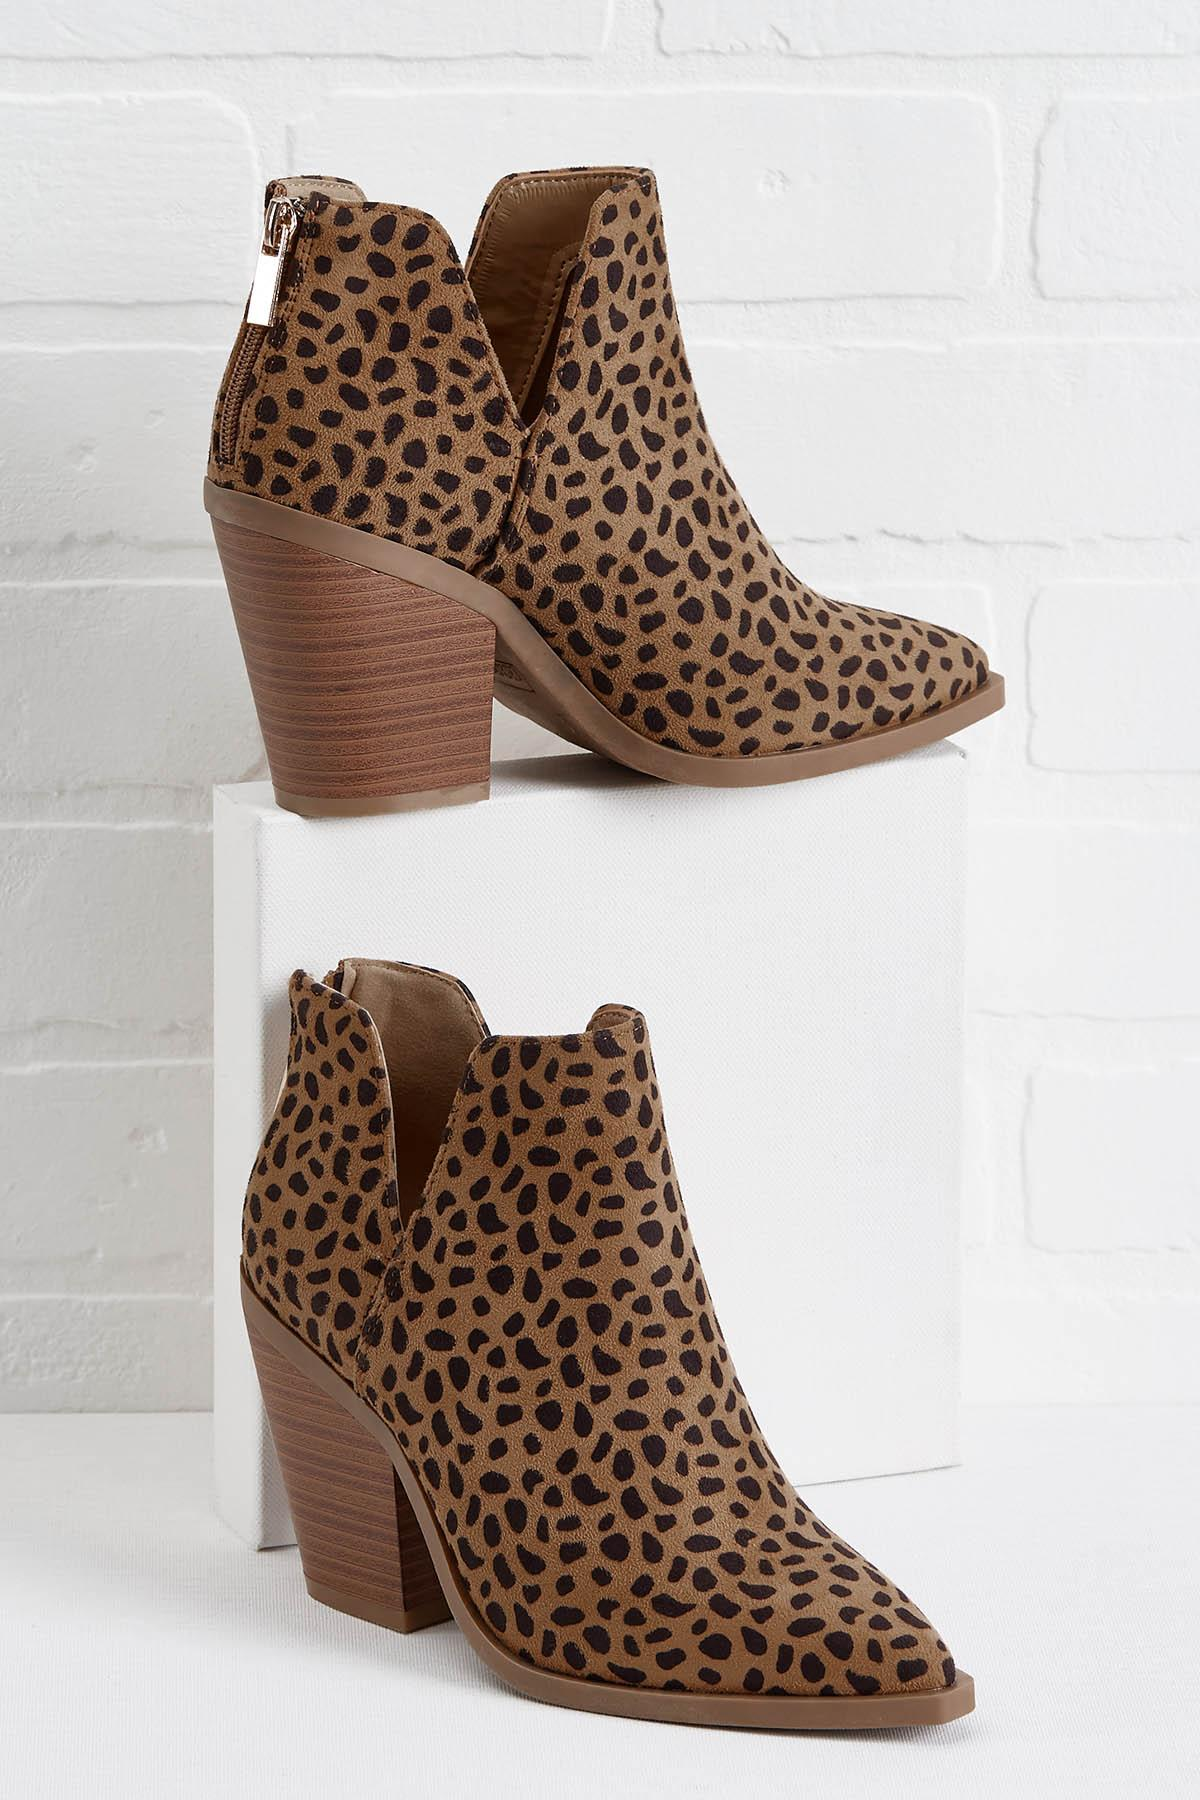 Prowl Around Town Booties